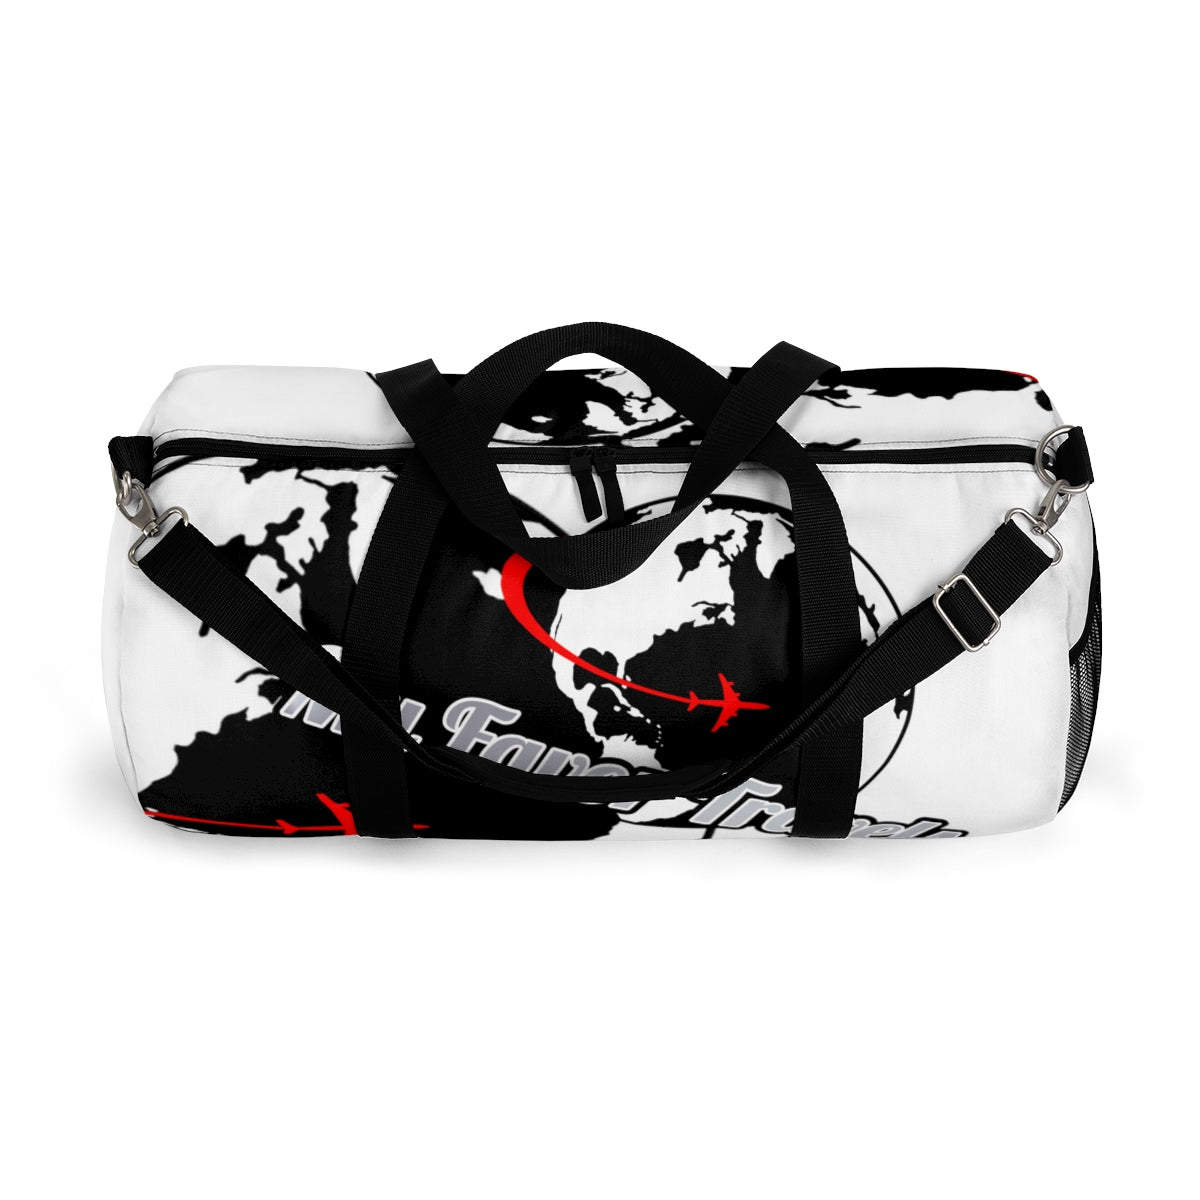 Favor Duffel Bag